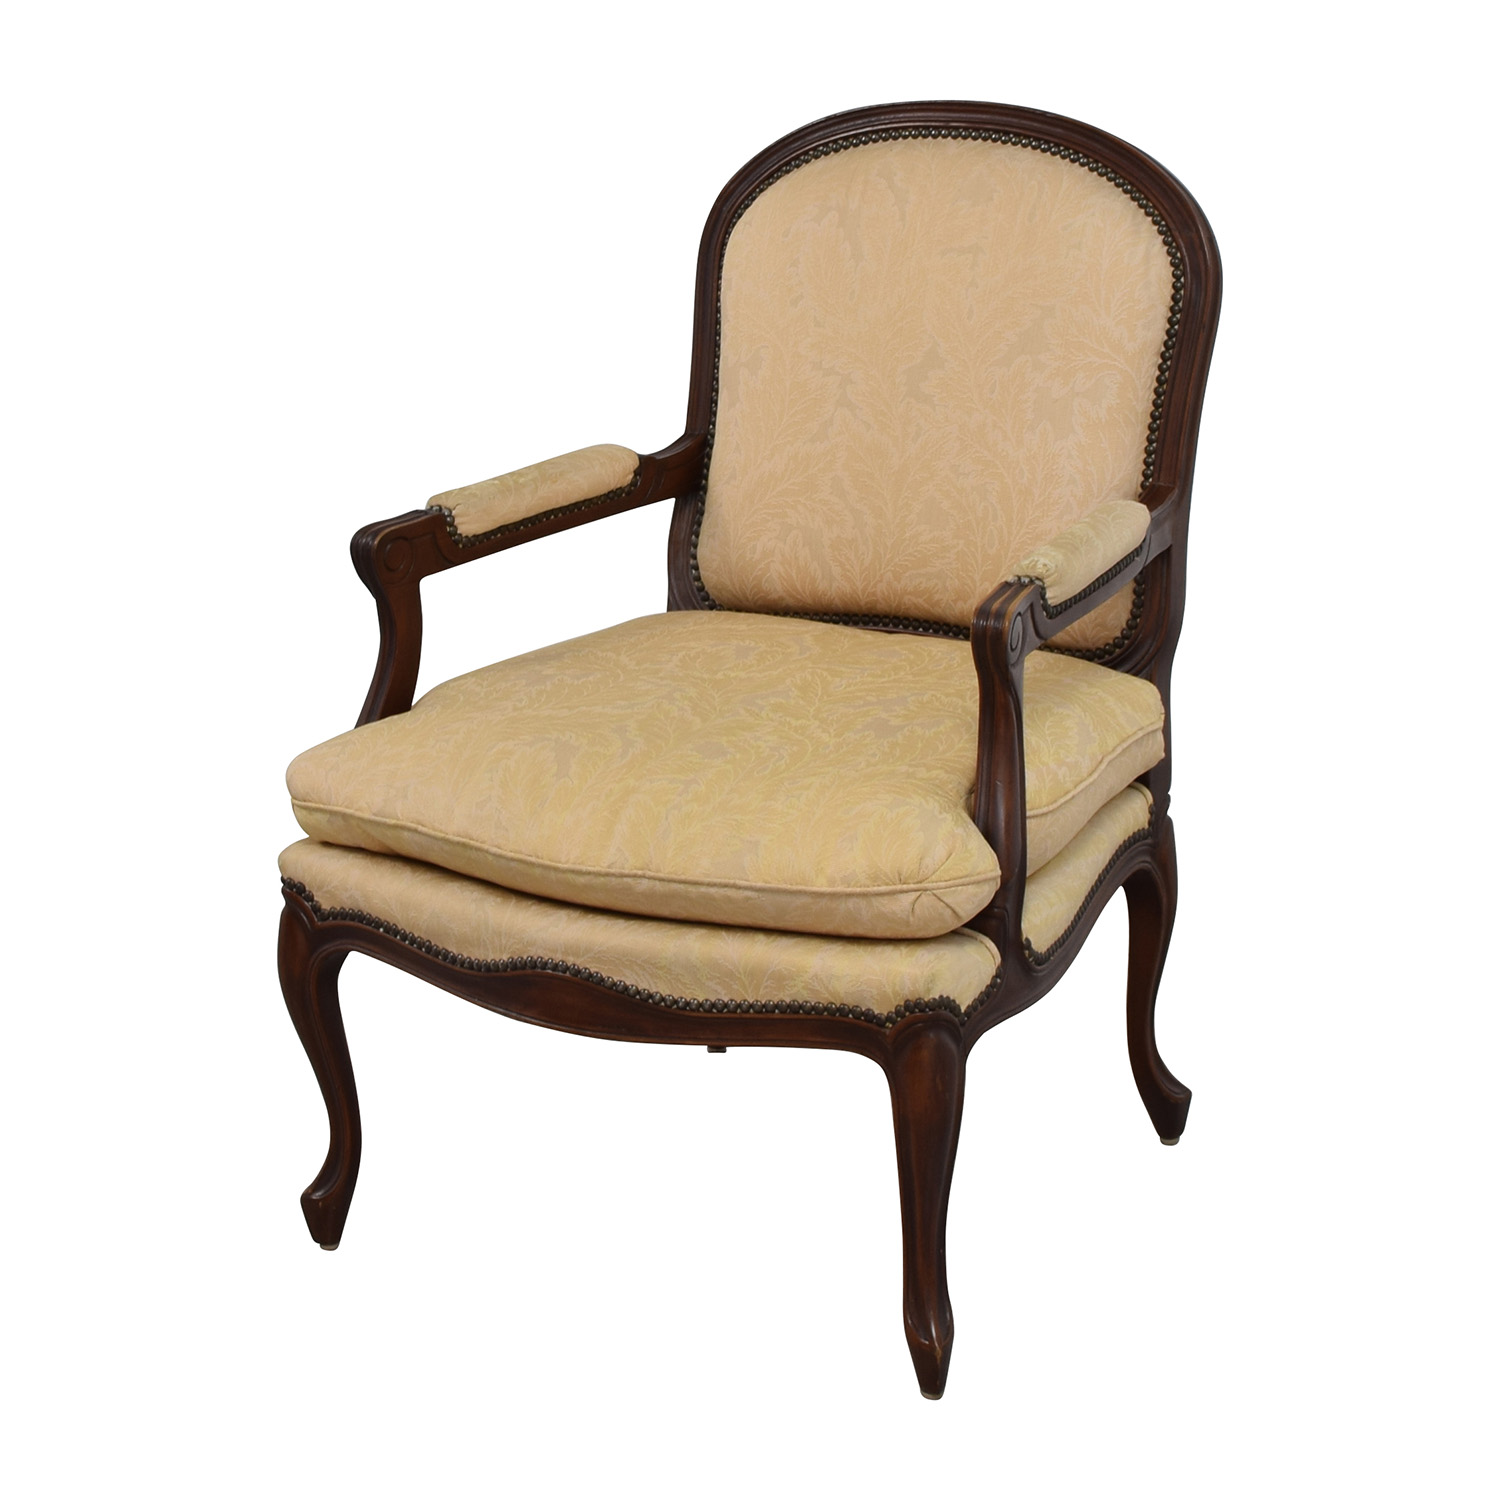 75 off gold floral jacquard upholstered studded accent for Upholstered accent chairs cheap